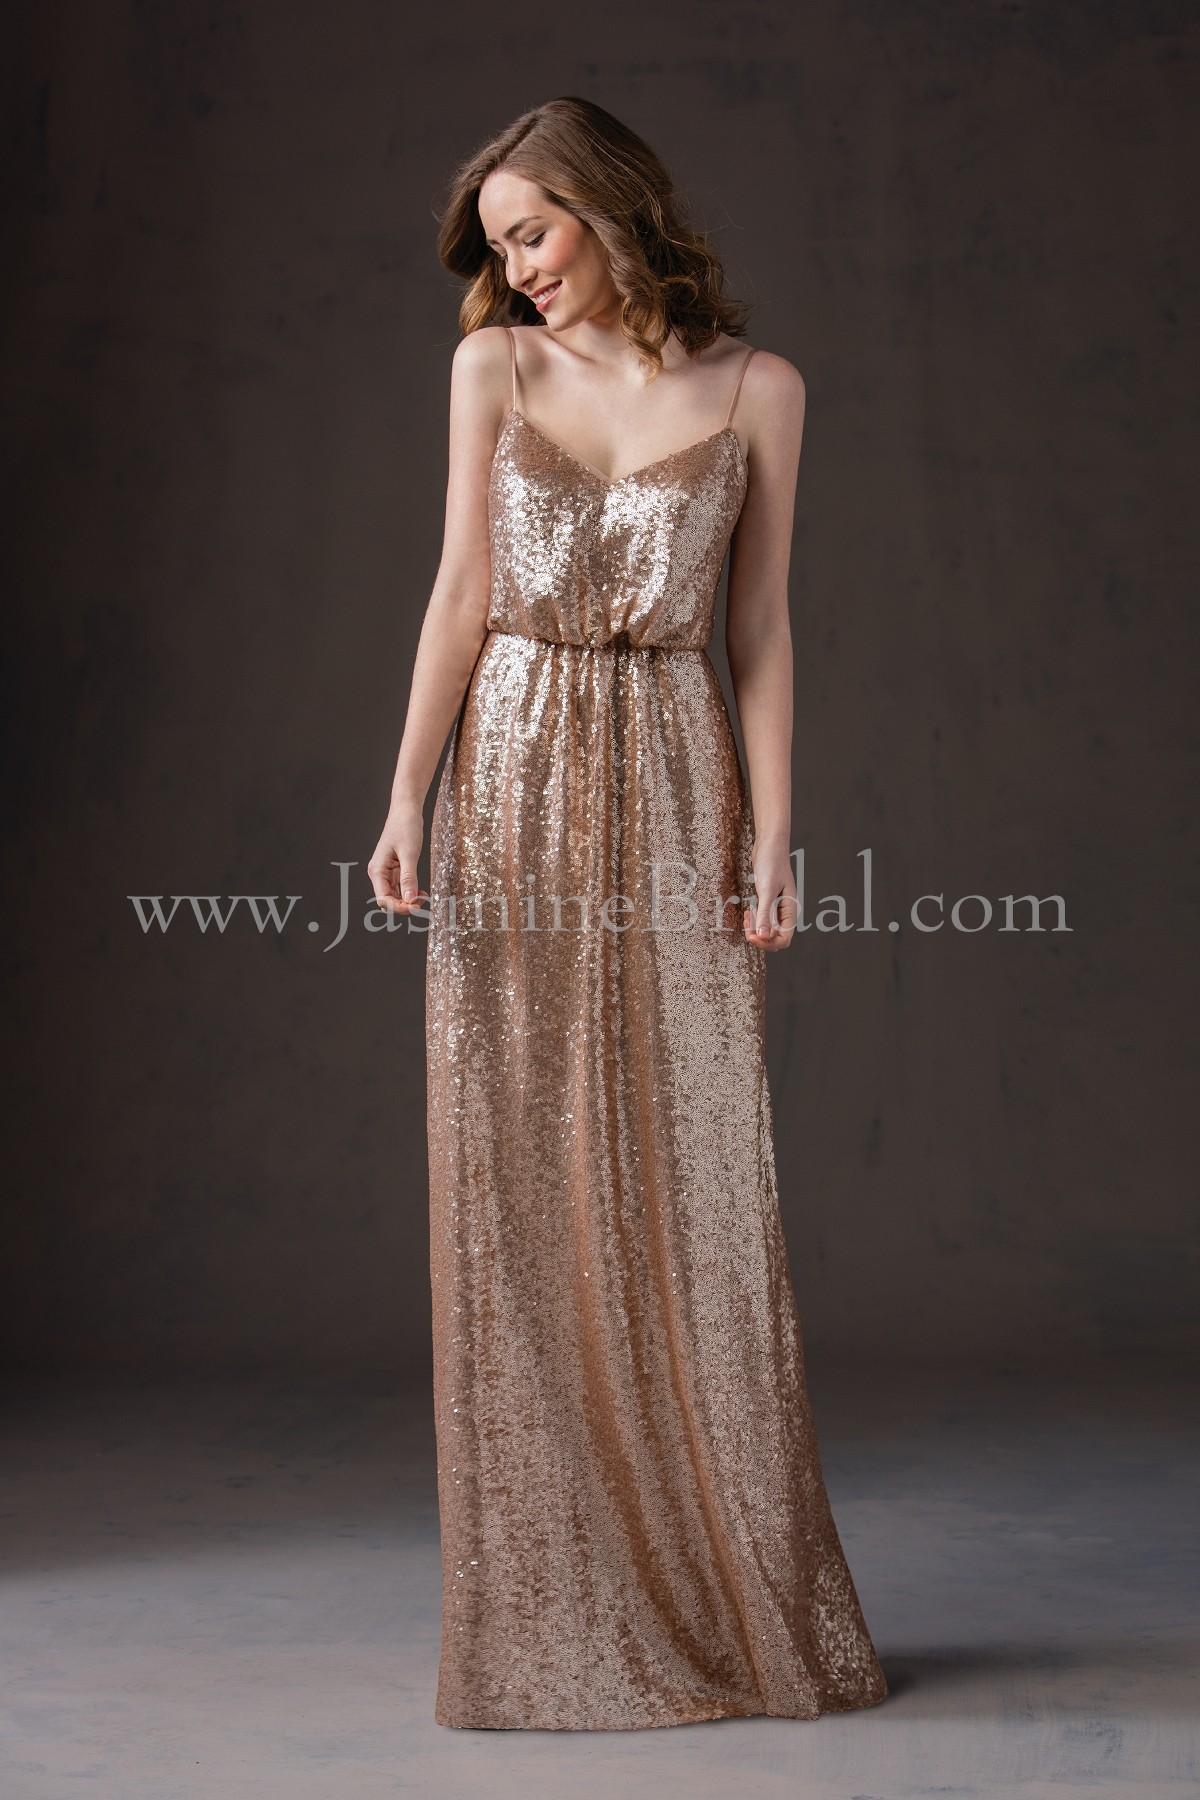 L184065 long v neck sequin bridesmaid dress with spaghetti straps ombrellifo Choice Image